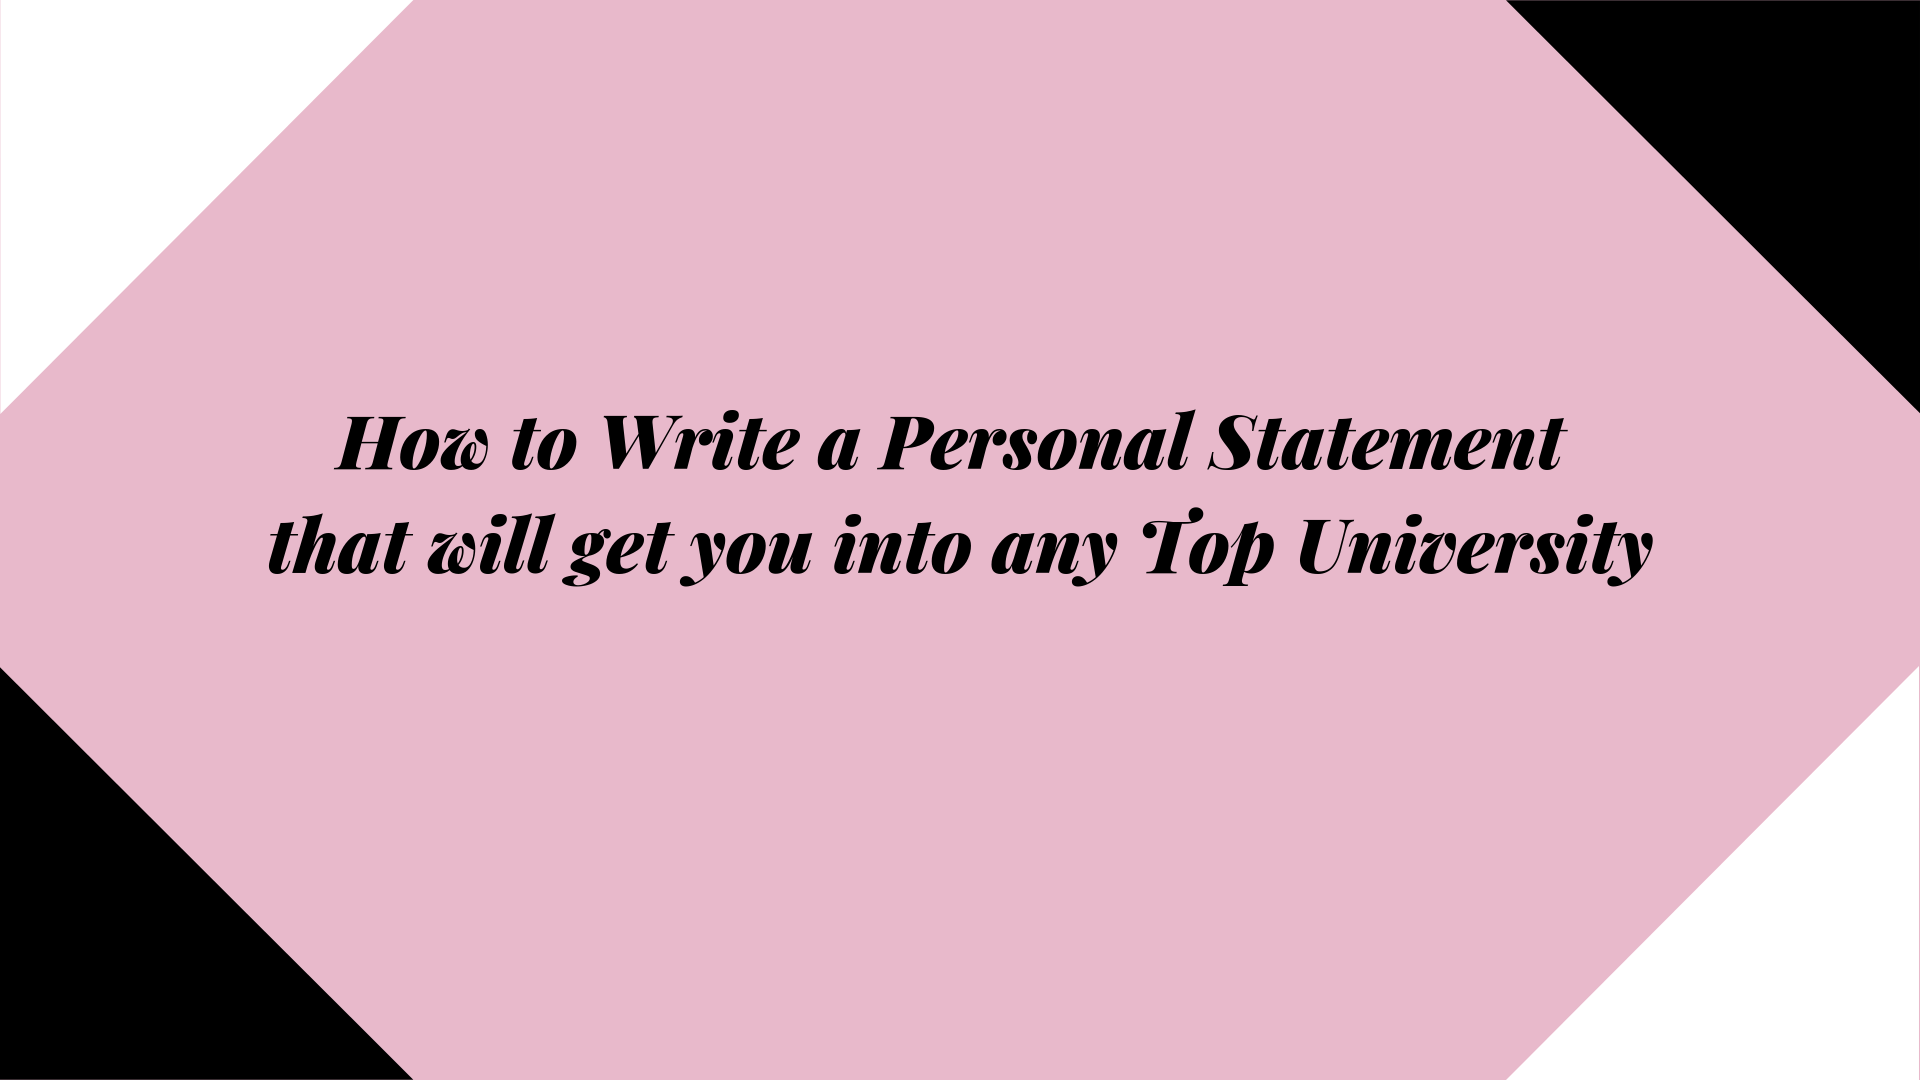 How to Write a Personal Statement that will get you into any Top University